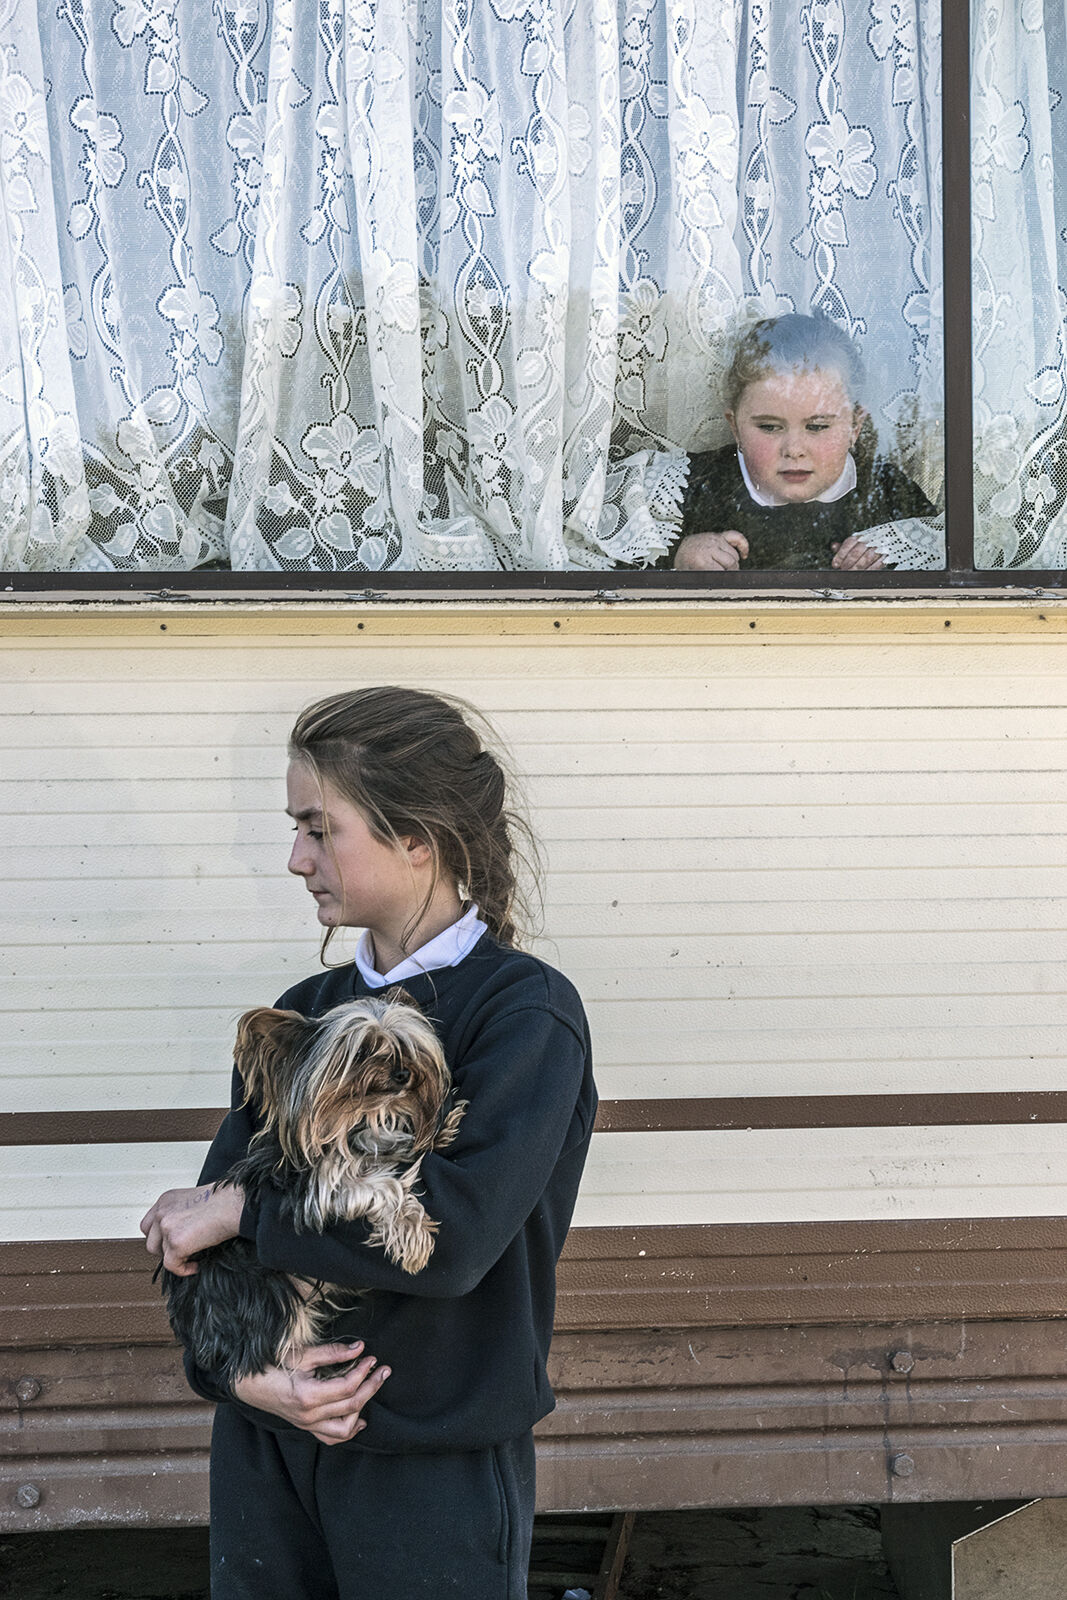 Reilly Sisters After School, Limerick, Ireland 2018